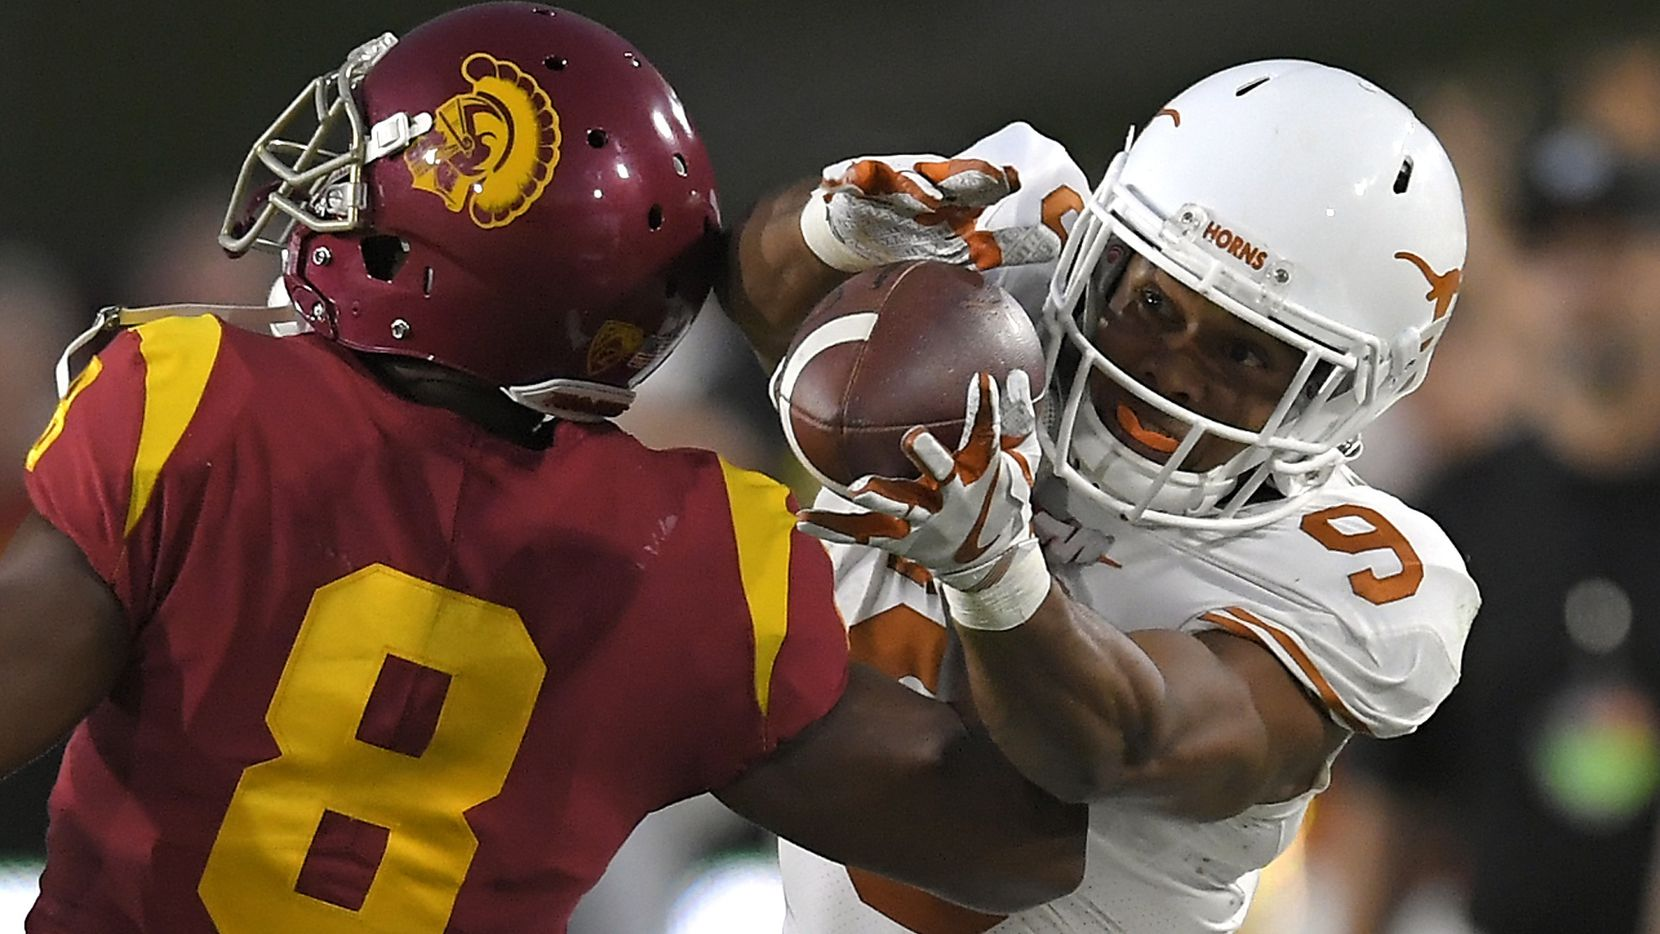 FILE - Texas wide receiver Collin Johnson, right, catches a pass as USC cornerback Iman Marshall defends during the first half of Texas' 27-24 double-overtime loss to then-No. 4 USC on Saturday, Sept. 16, 2017, in Los Angeles. Johnson went for 191 receiving yards on seven receptions. (AP Photo/Mark J. Terrill)